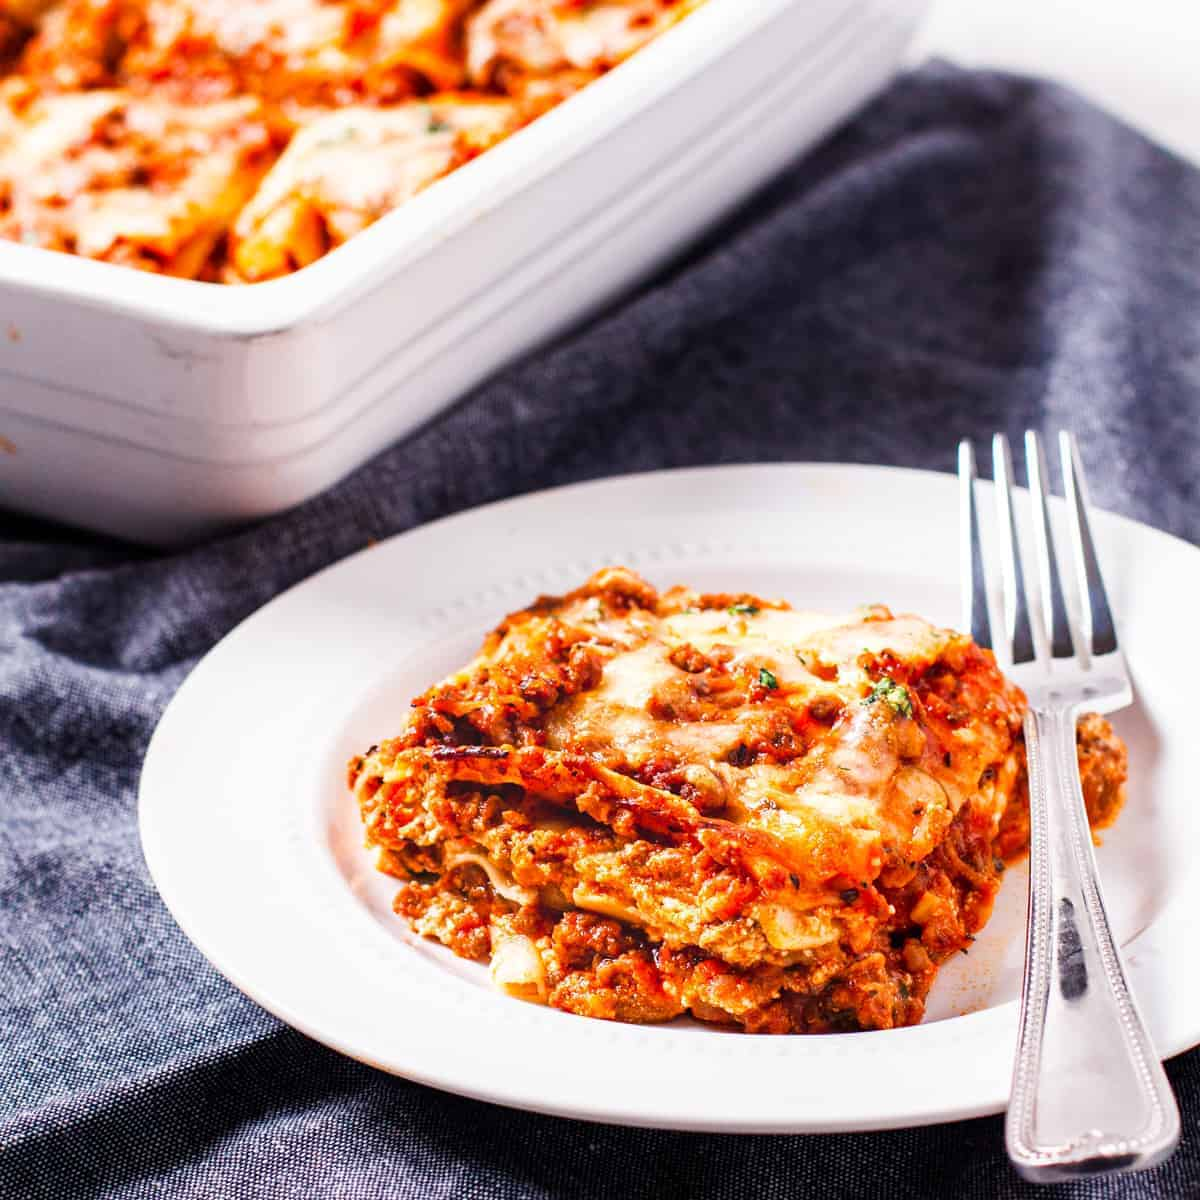 Side angle view showing a serving of lasagna alongside the lasagna dish.